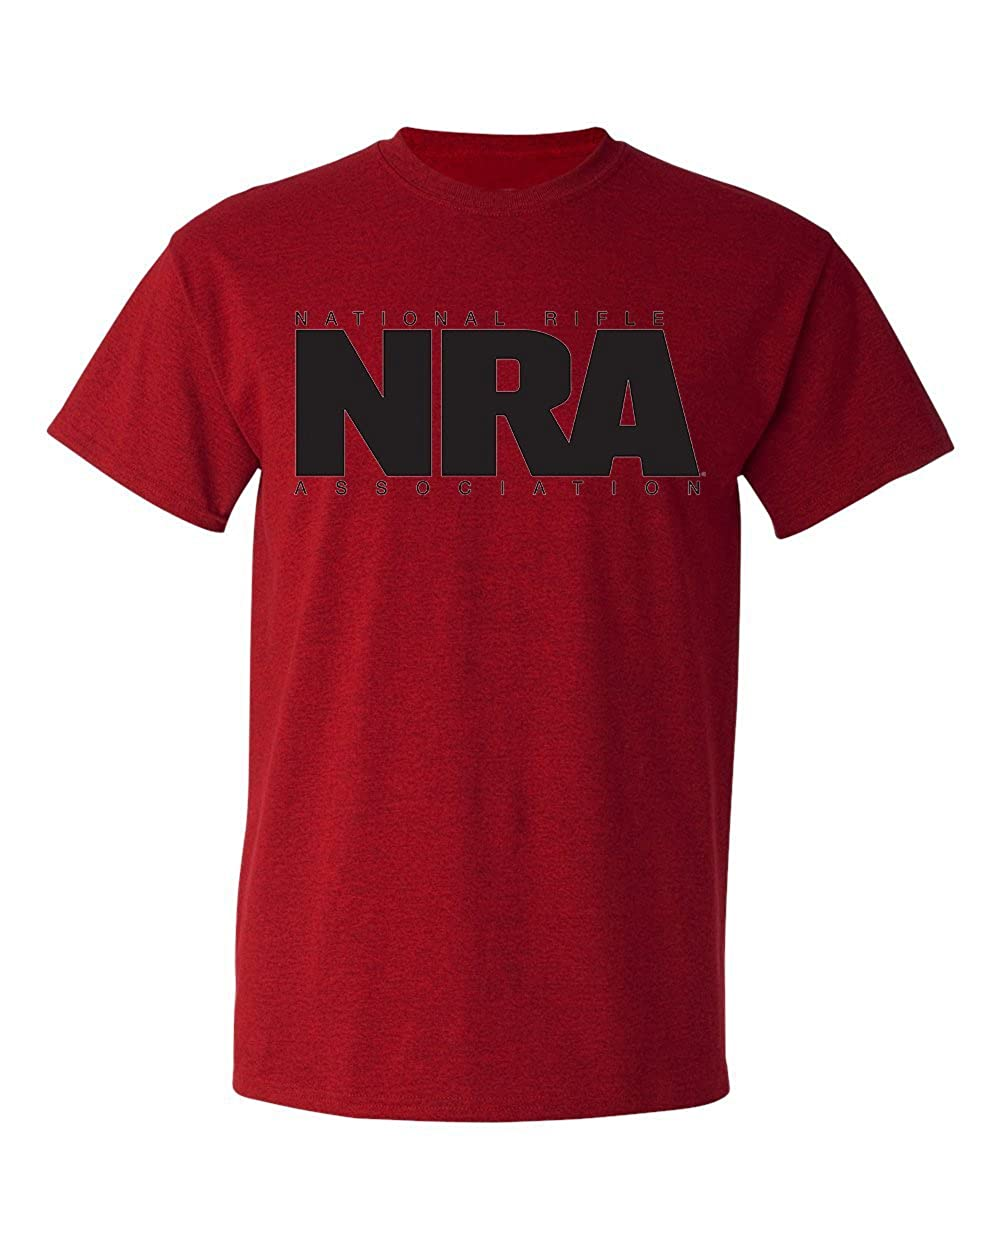 13870fb0 While widely recognized today as a major political force and as America's  foremost defender of Second Amendment rights, the NRA has, since its  inception, ...